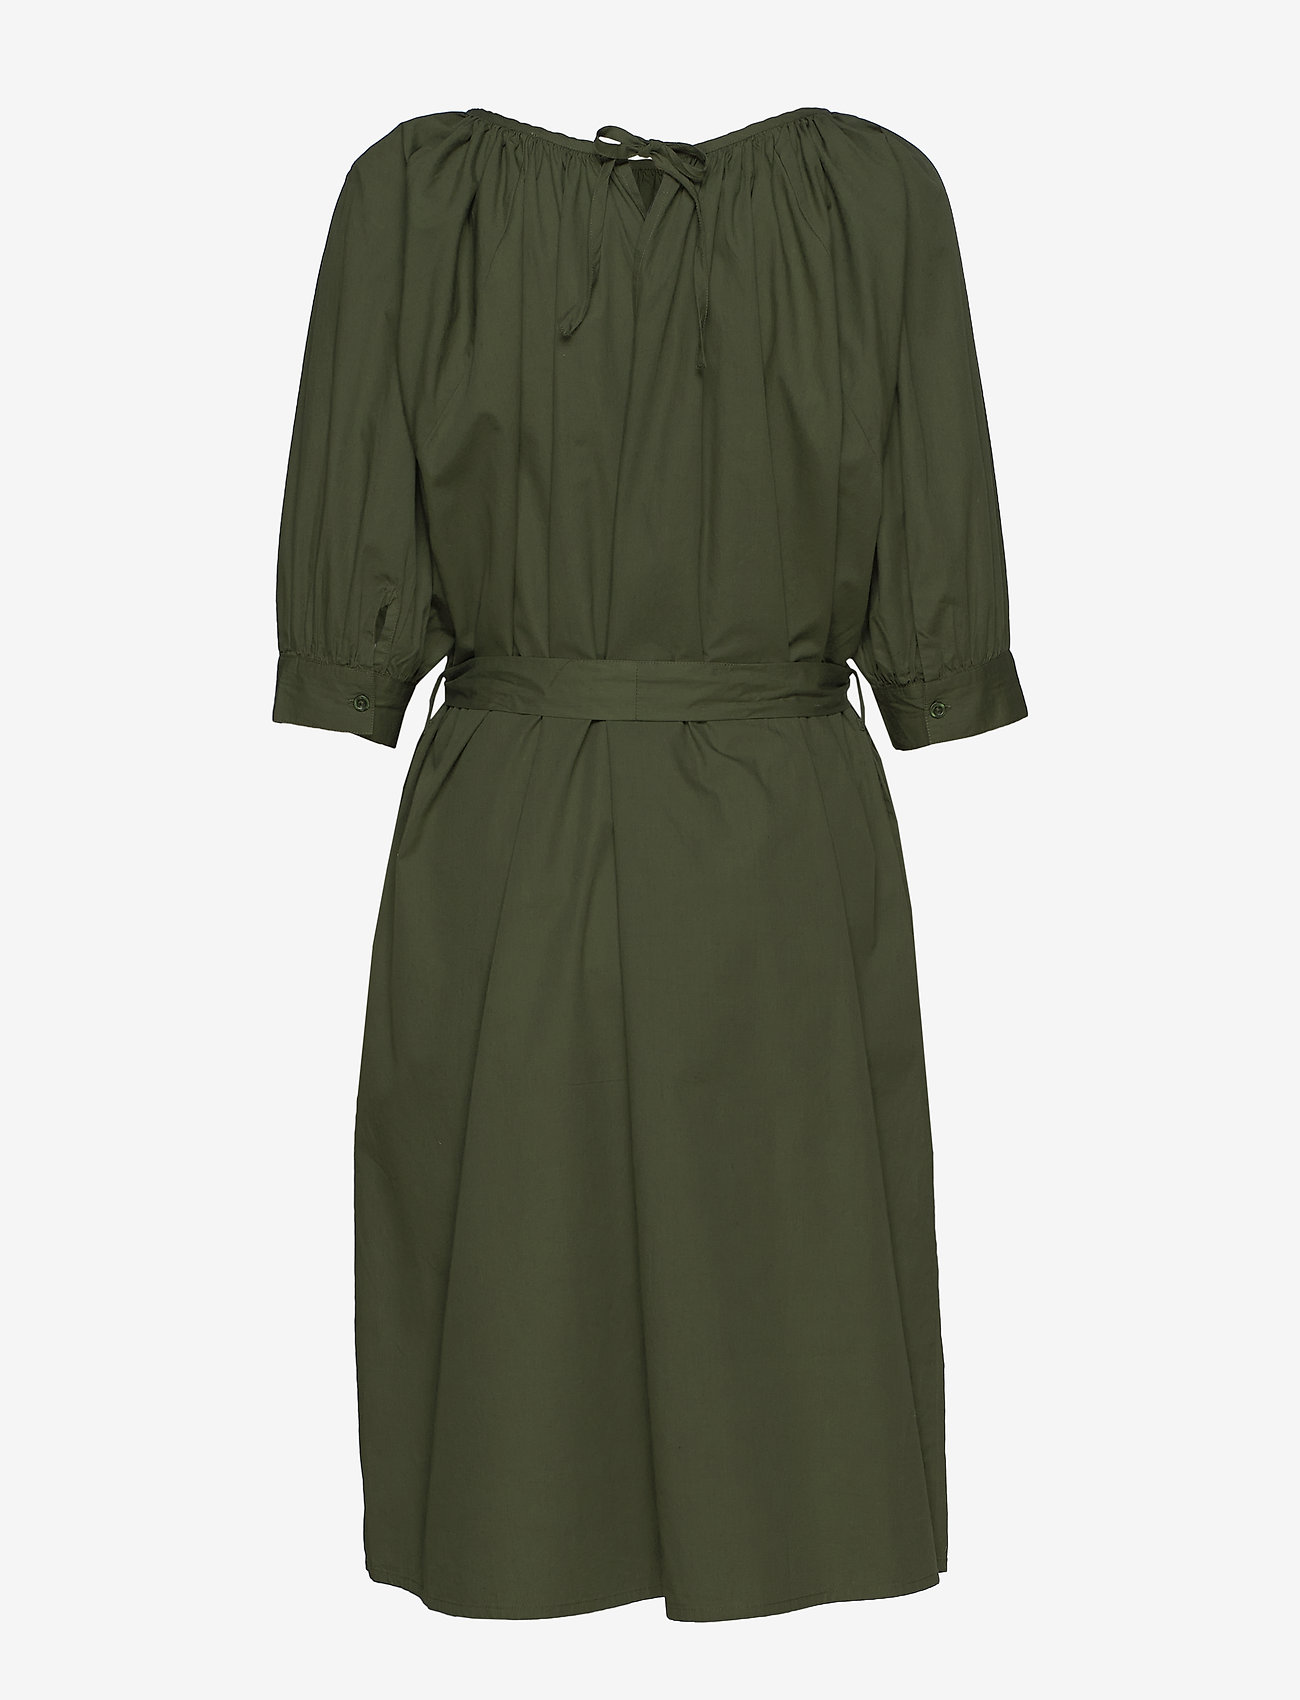 Elia Dress (Army) (1421.25 kr) - Lovechild 1979